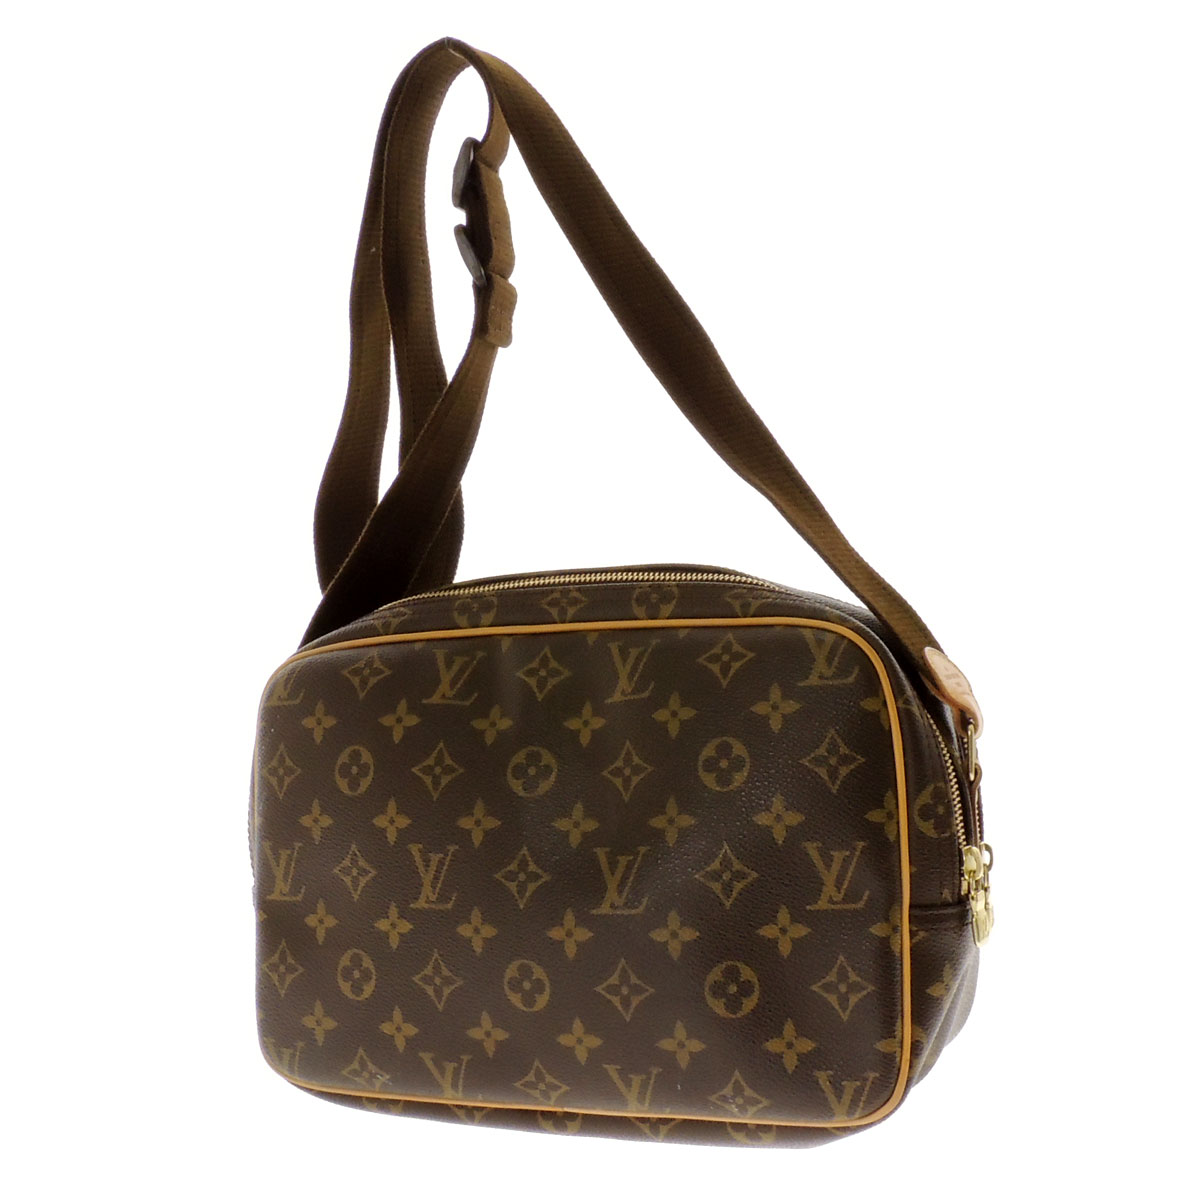 28 LOUIS VUITTON reporter M45254 shoulder bag monogram canvas Lady's fs3gm